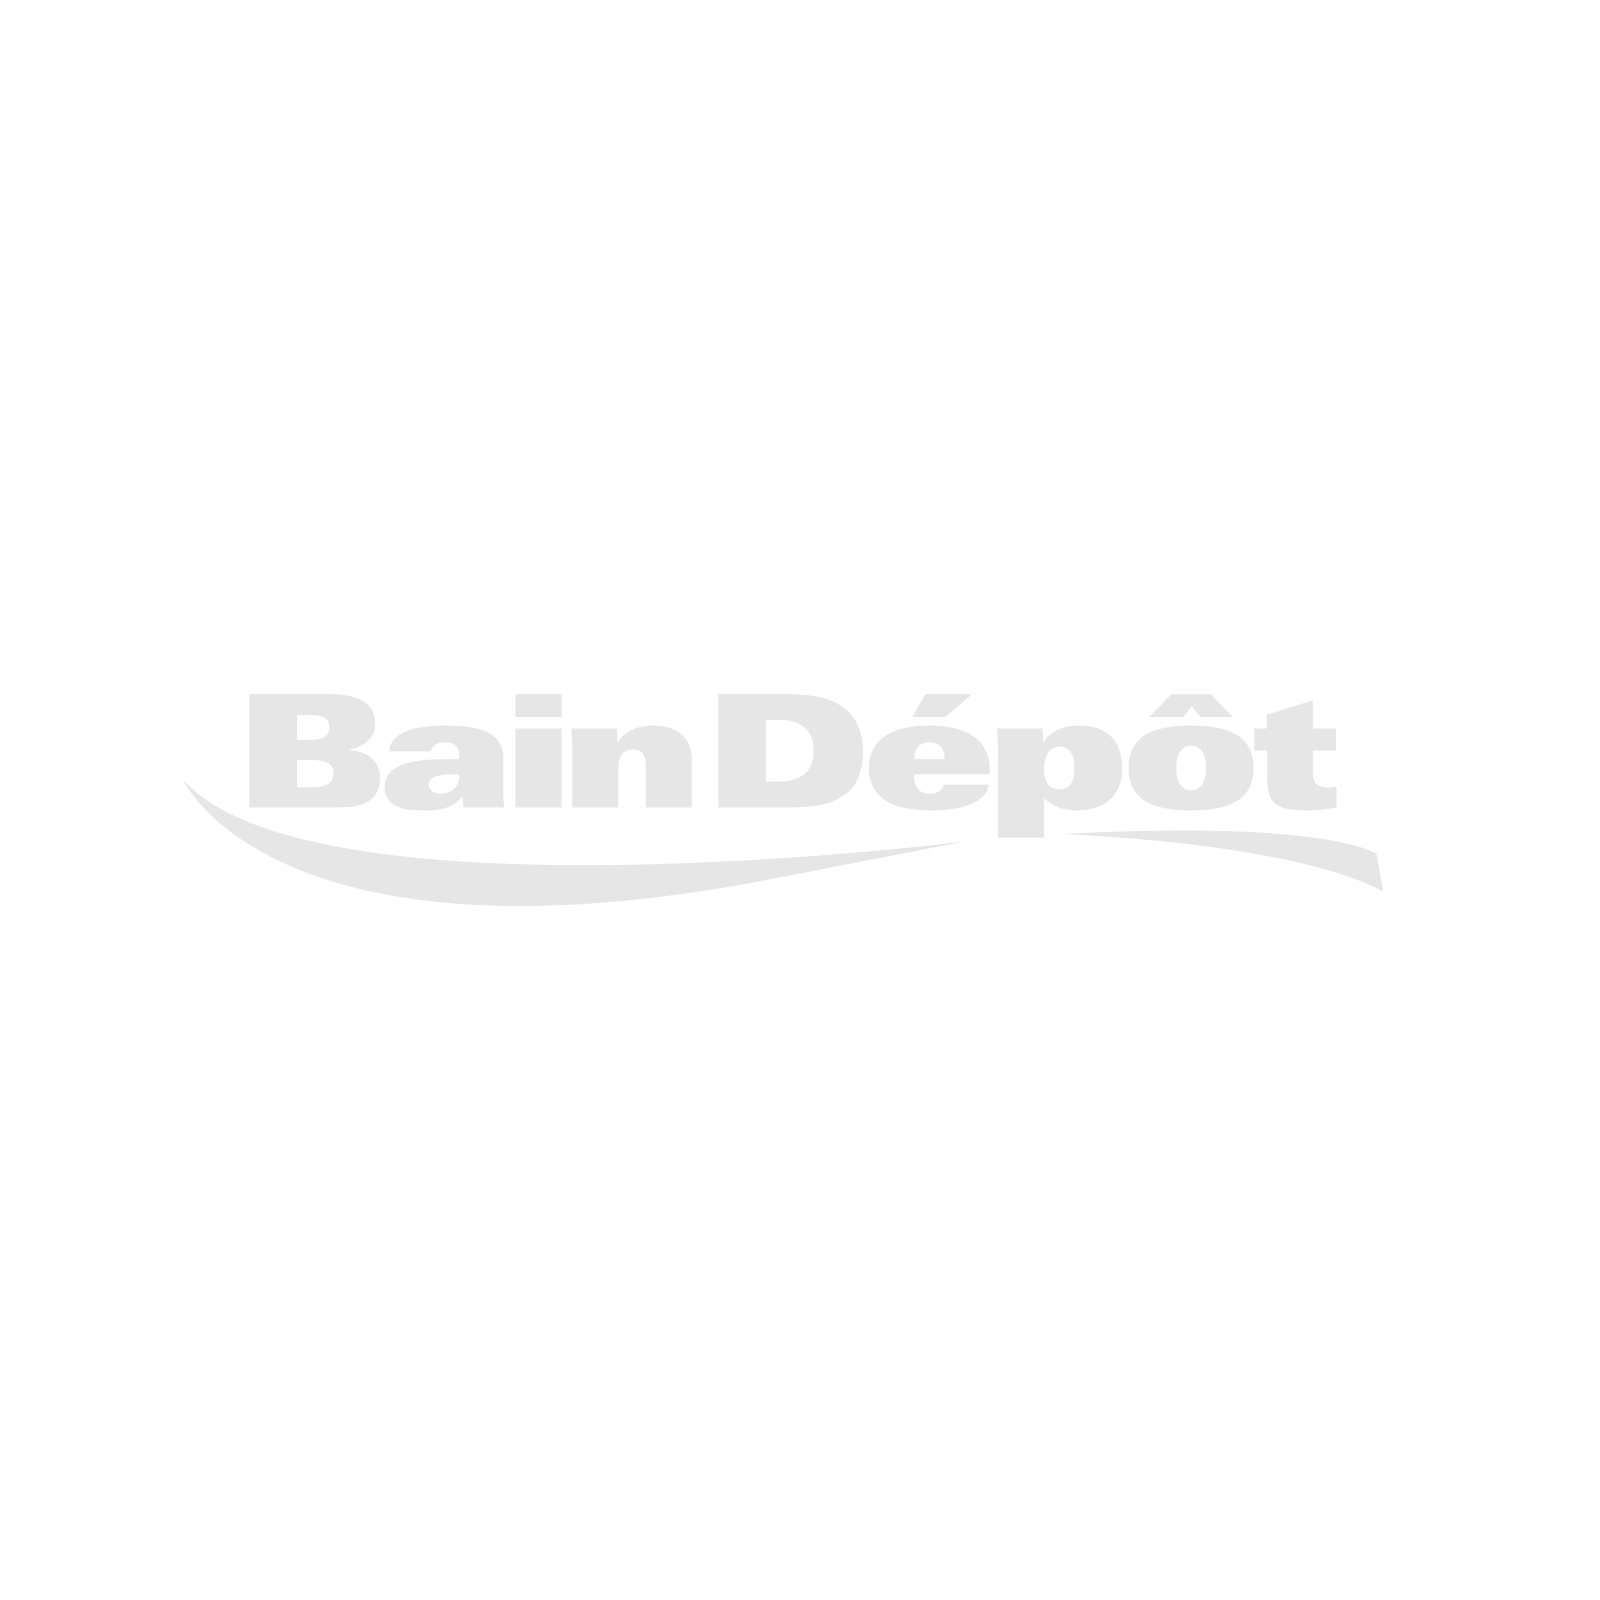 "Single undermount kitchen sink 28"" x 18"""